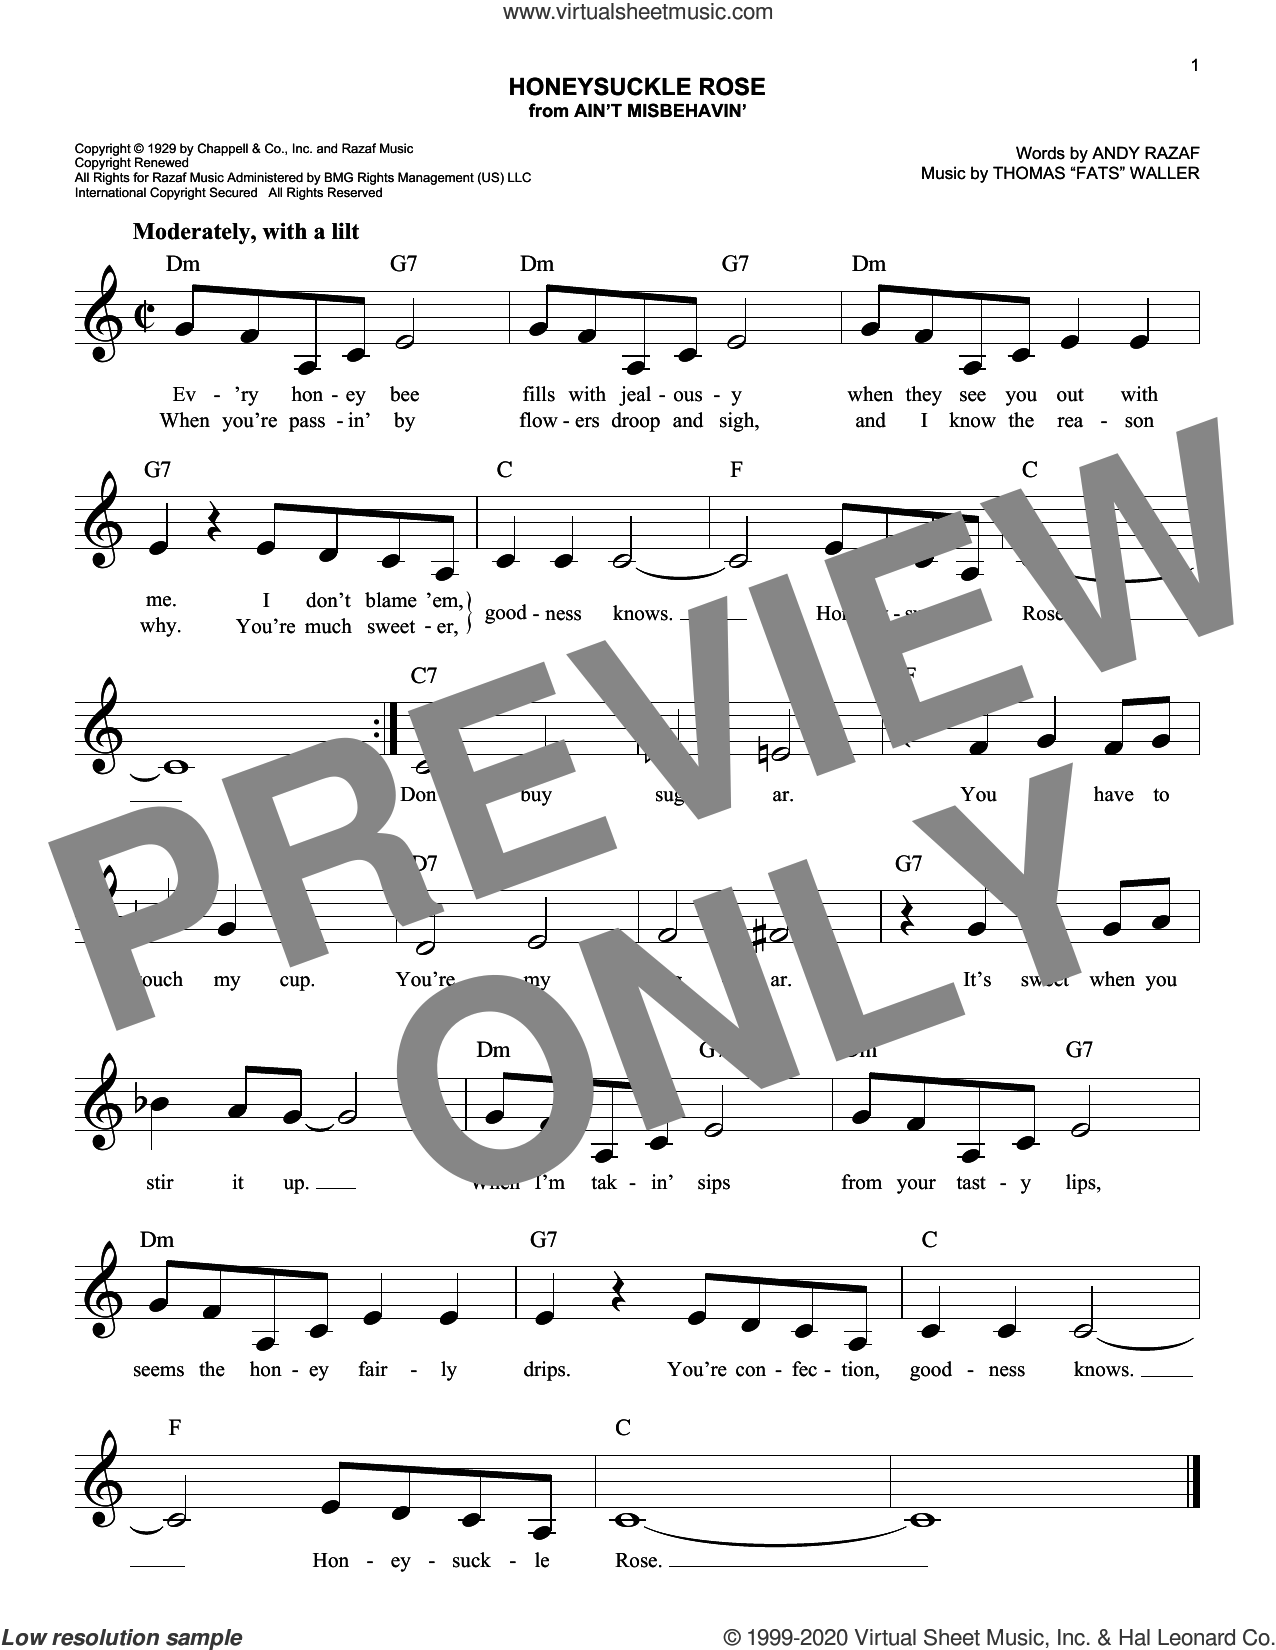 Honeysuckle Rose sheet music for voice and other instruments (fake book) by Andy Razaf and Thomas Waller and Thomas Waller, intermediate skill level